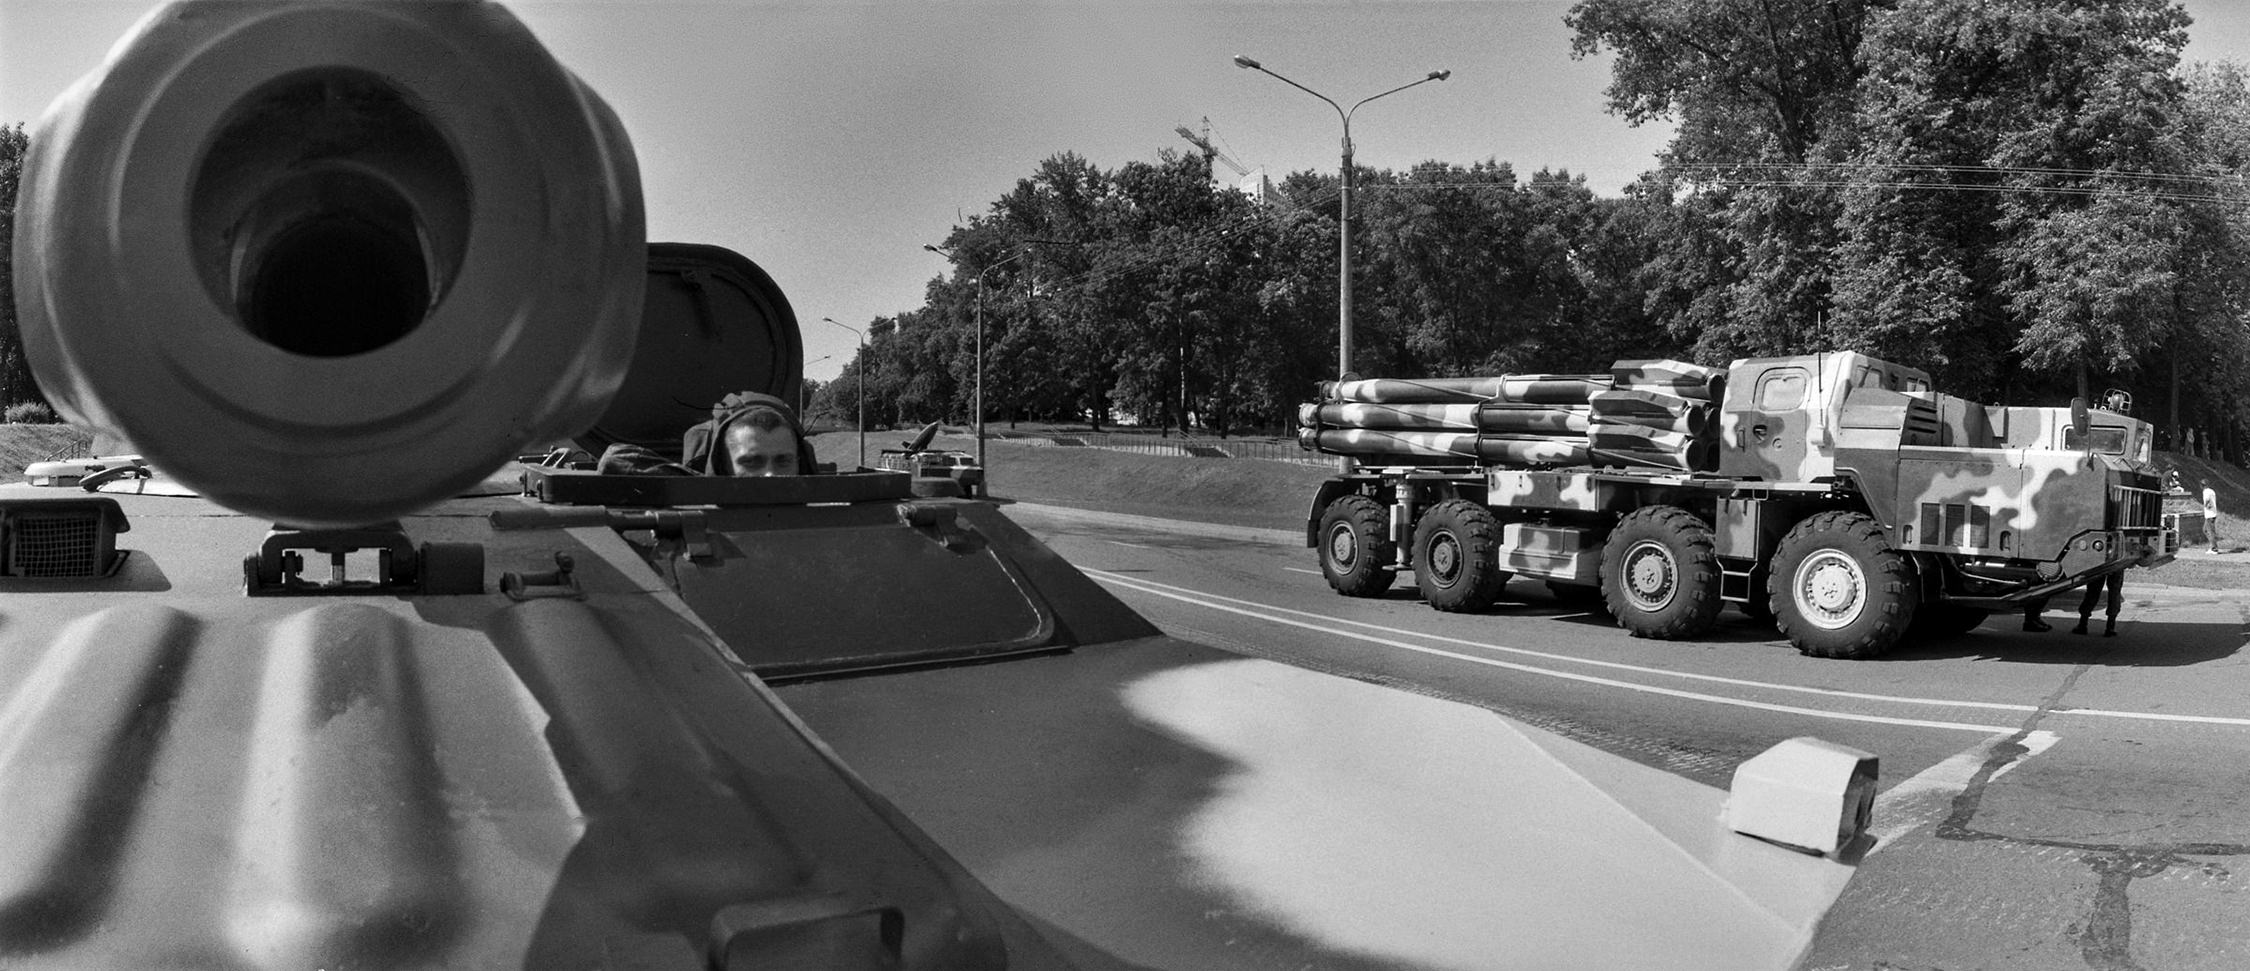 Black-and-white street photograph of tank driver protruding from the hatch of armed vehicle